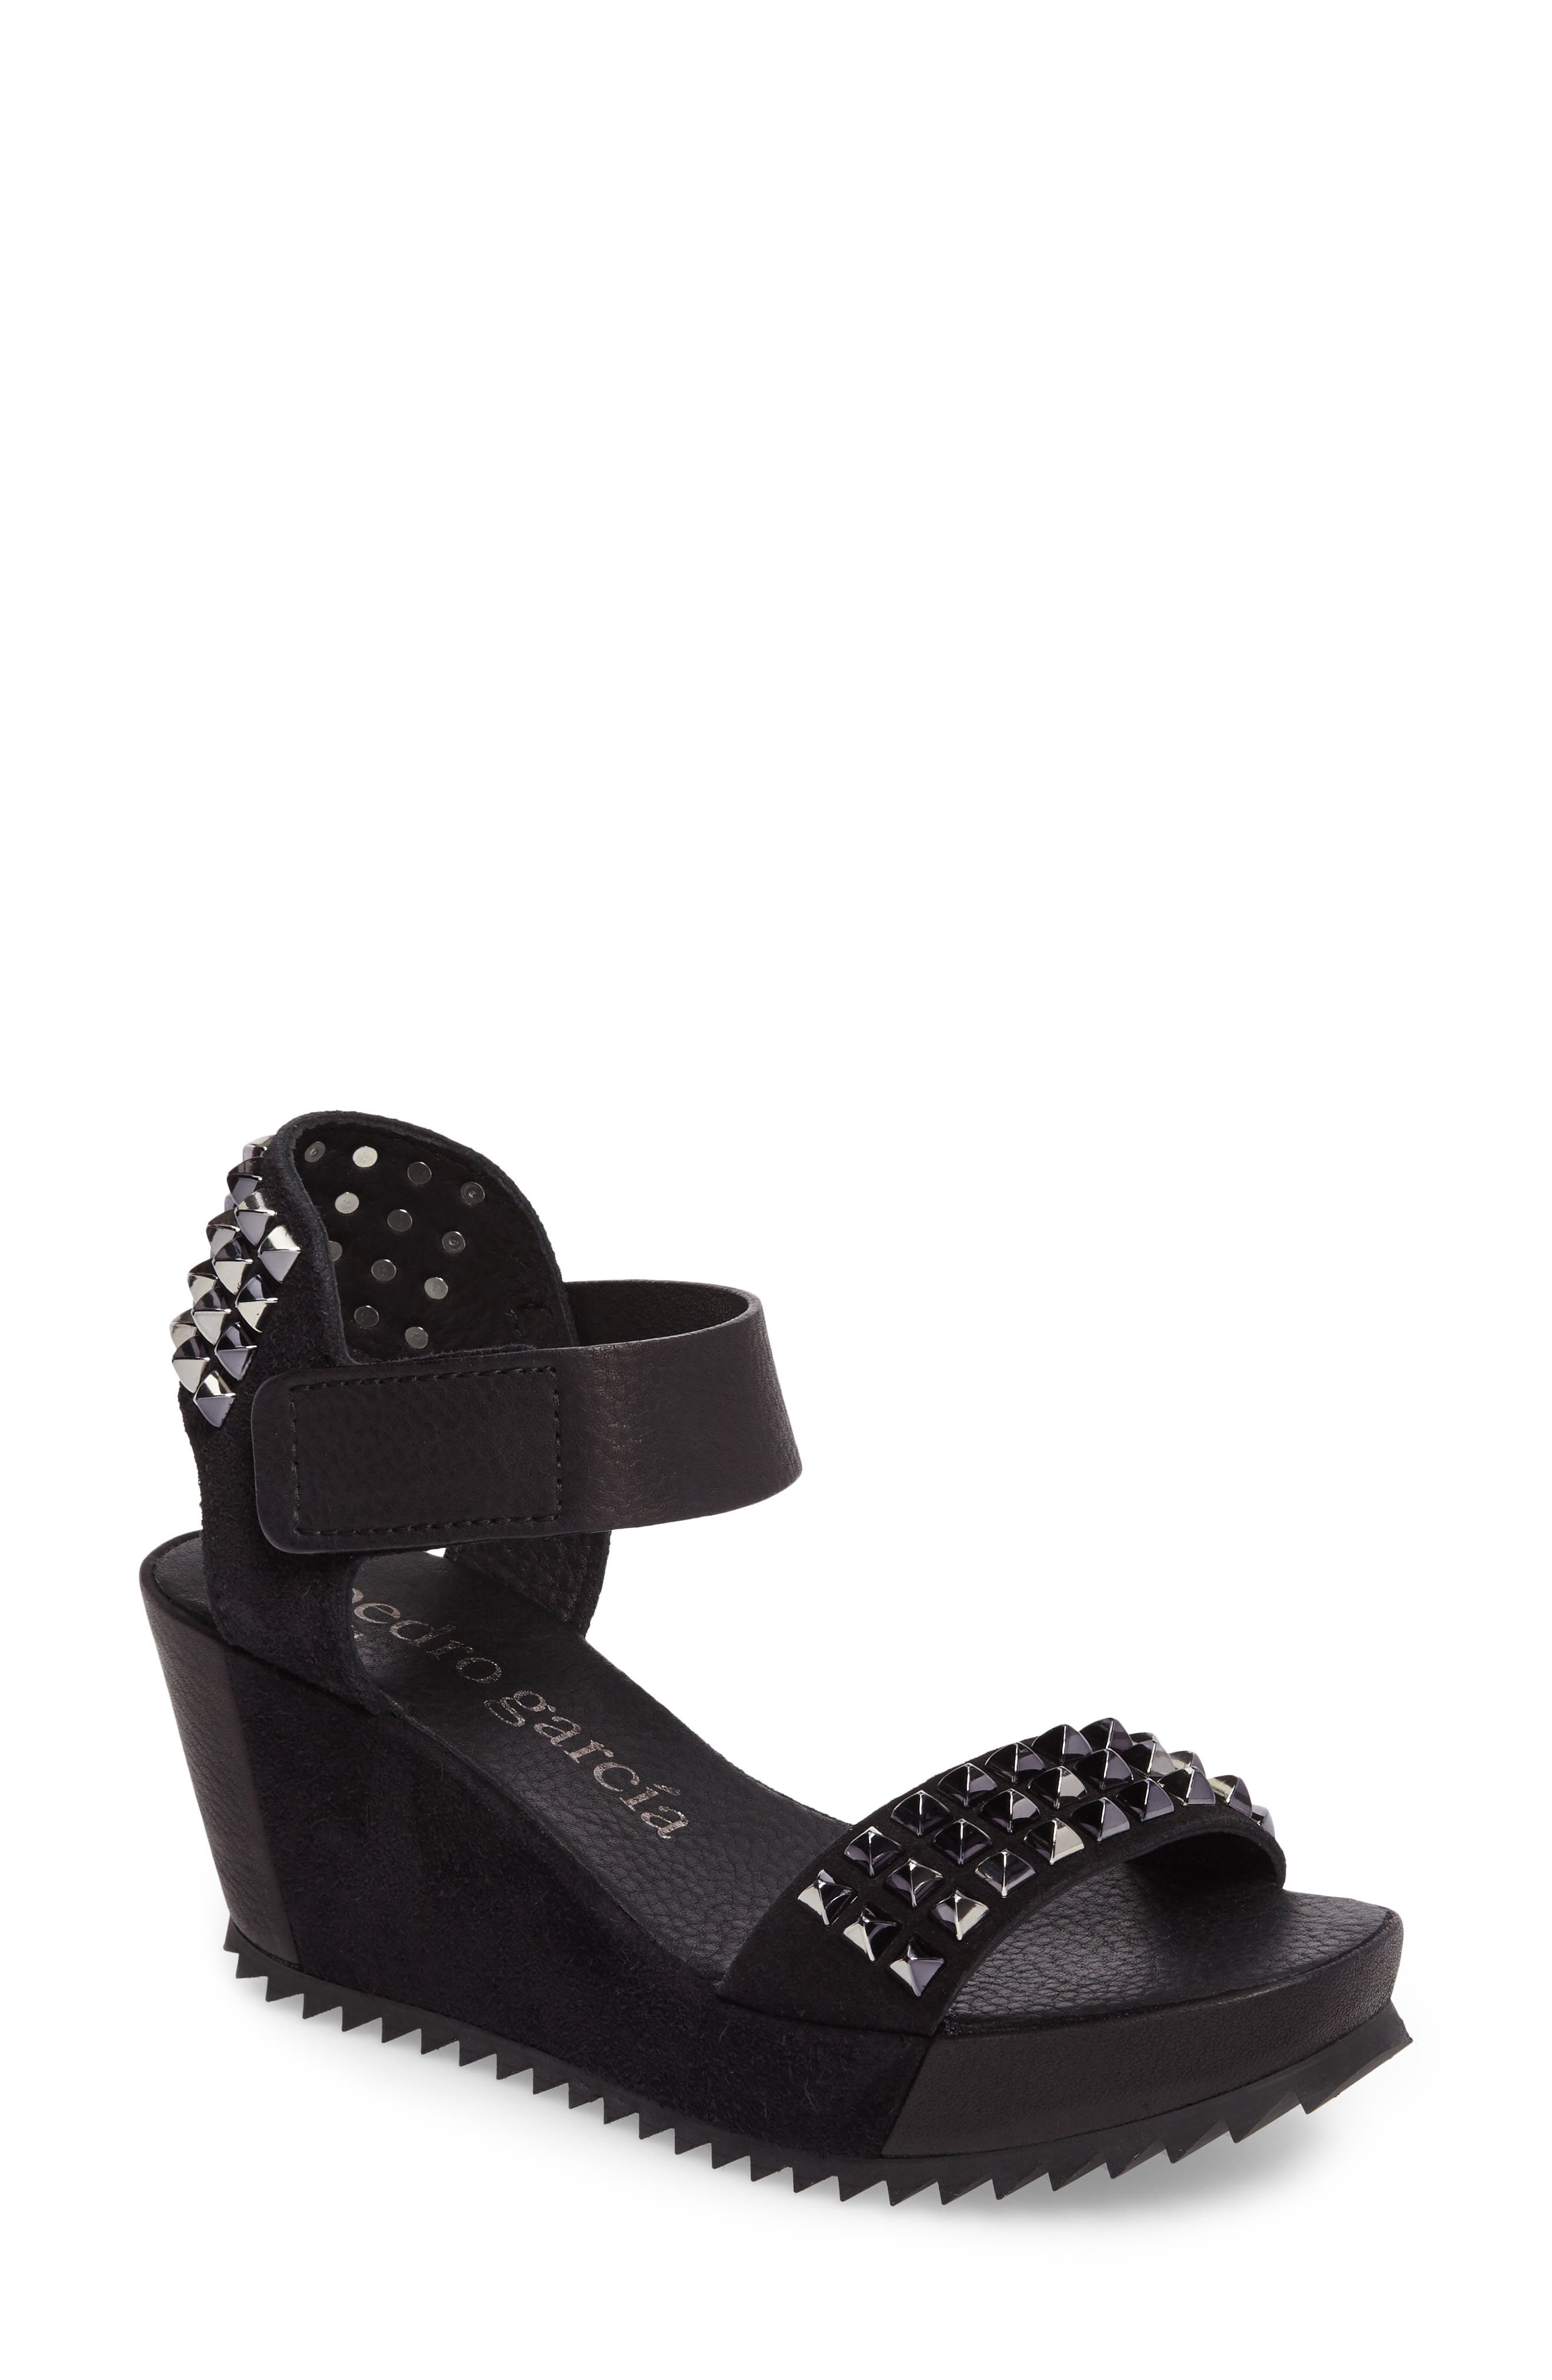 Fortuna Studded Wedge Sandal,                             Main thumbnail 1, color,                             Black Castoro/ Pewter